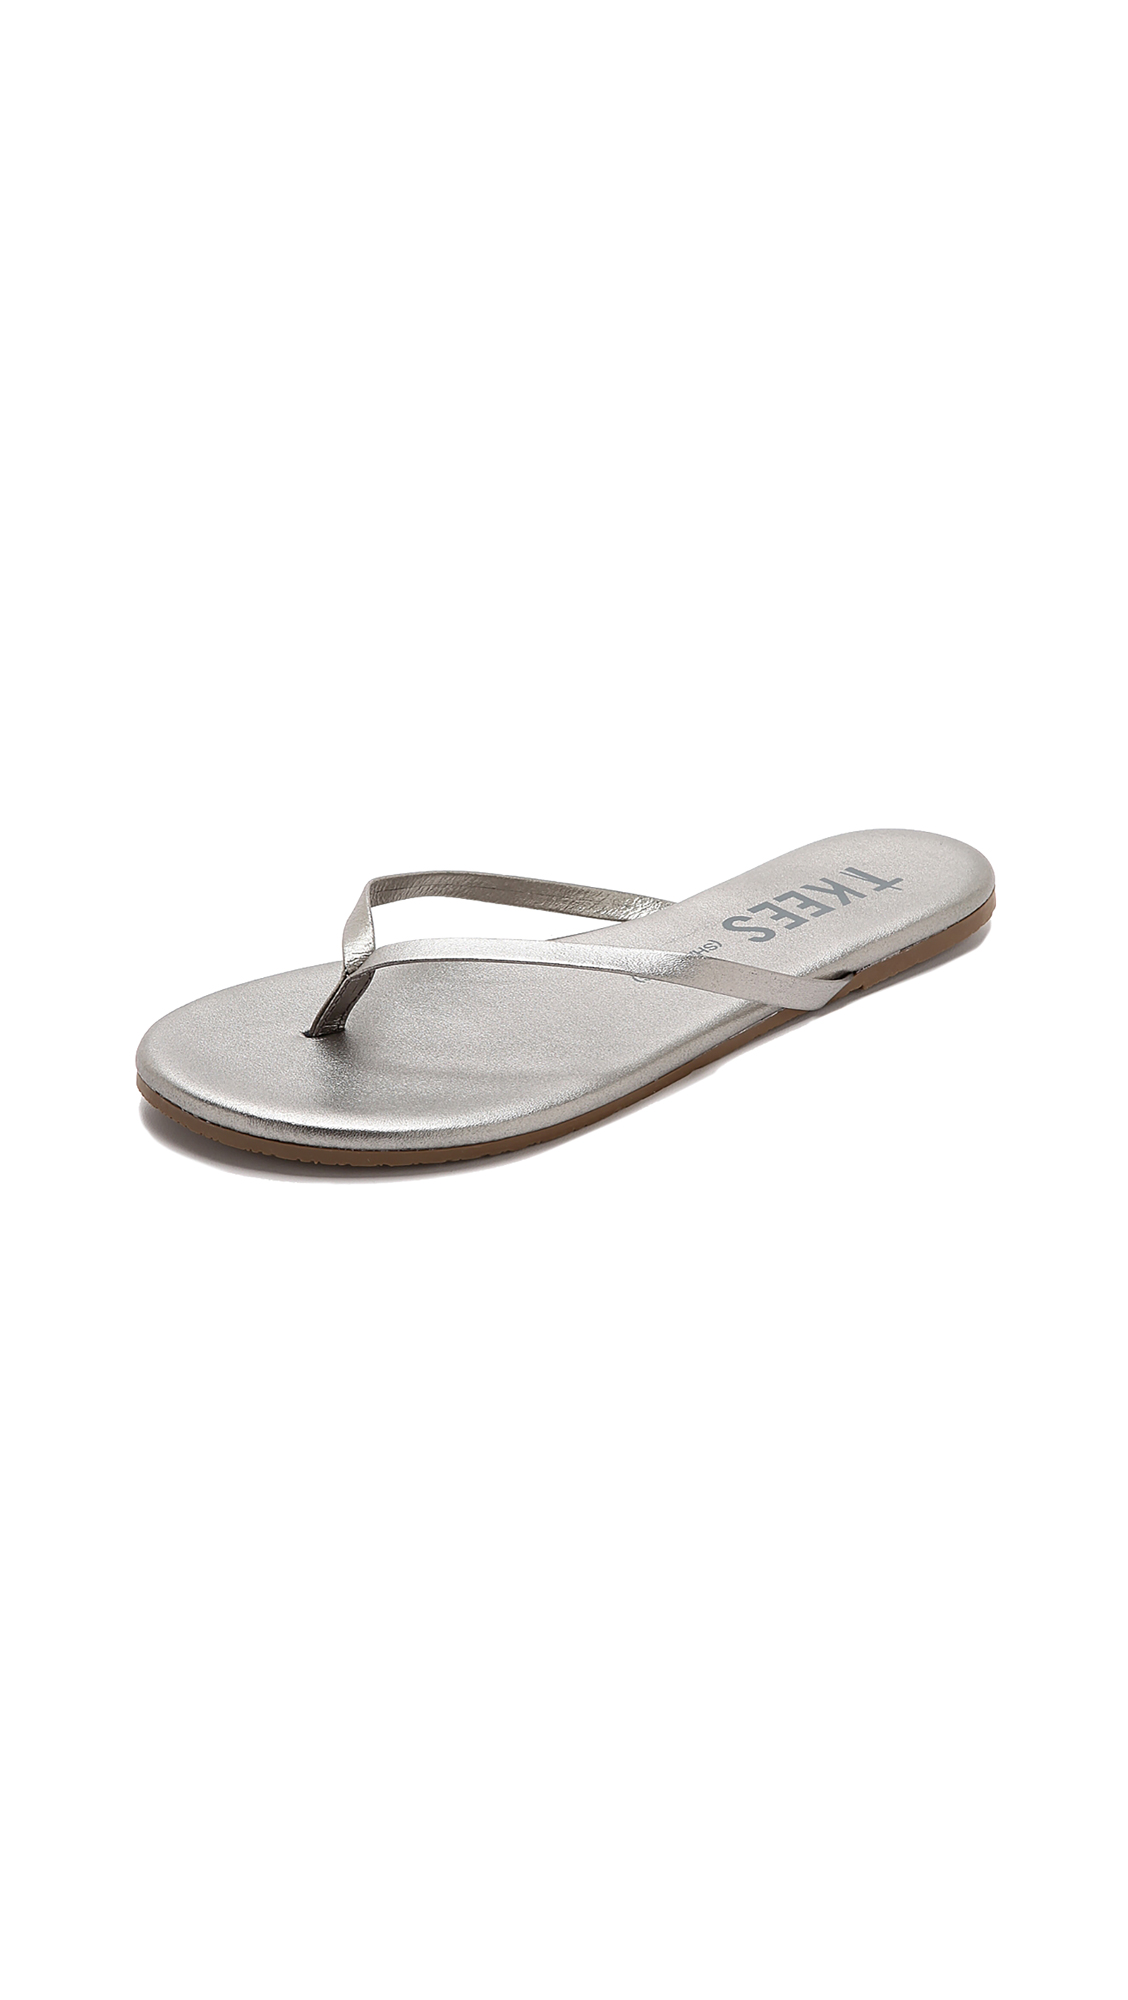 TKEES Shadow Flip Flops - Frosty Grey